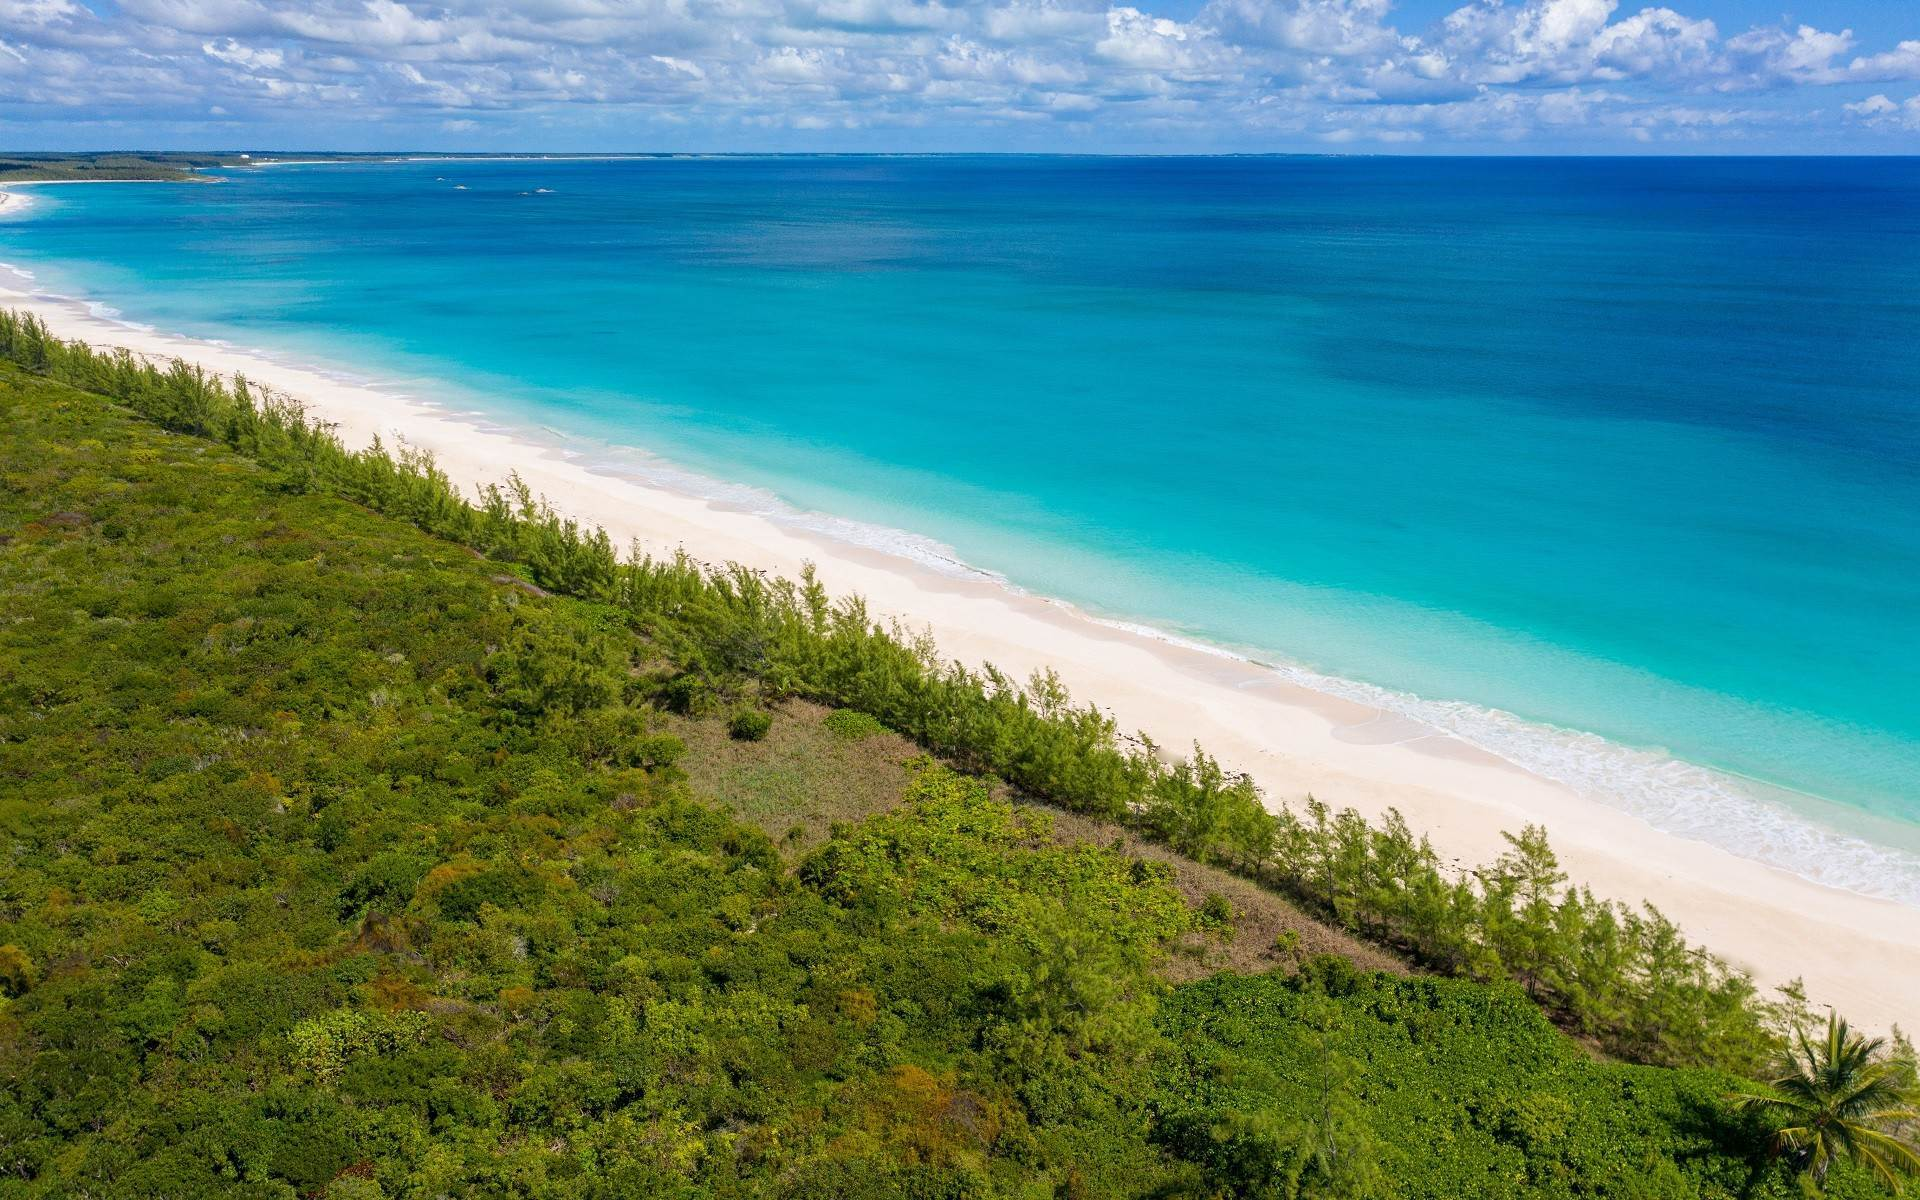 Land/Lot for Sale at Schooner Bay Beachfront Property, Great Abaco - MLS 41995 Abaco, Bahamas